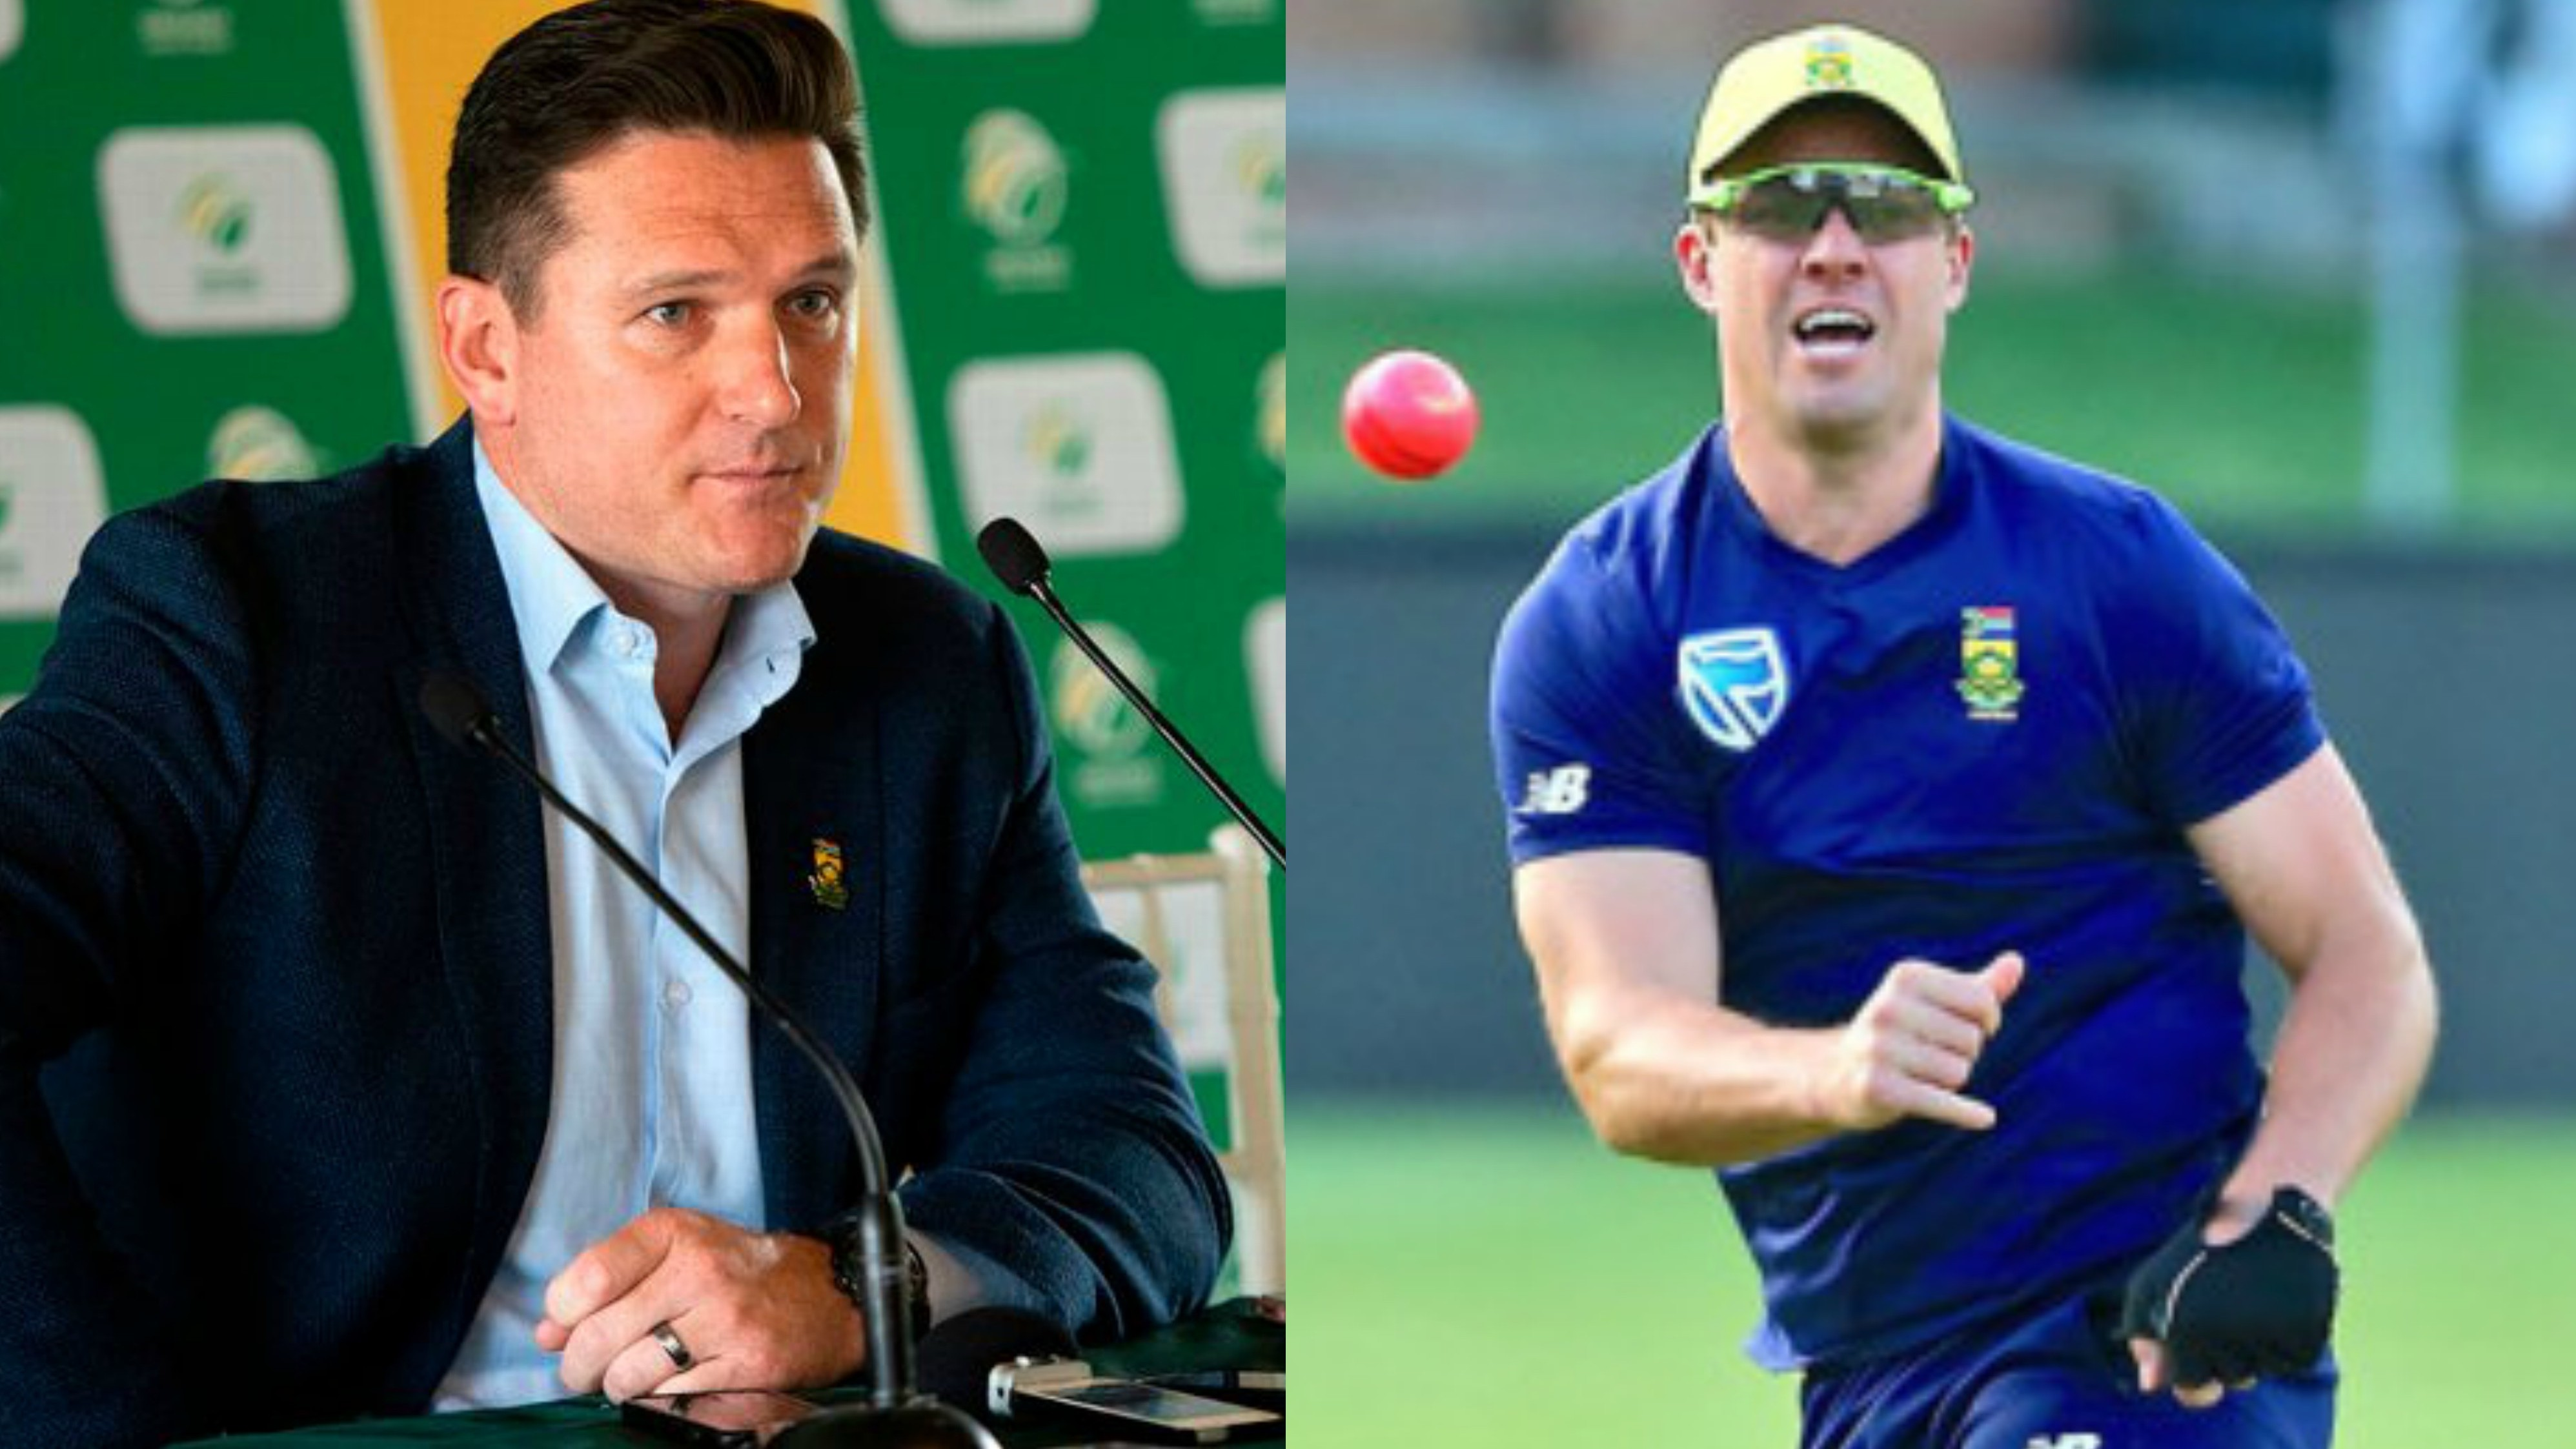 Cricket South Africa chief Graeme Smith comments on AB de Villiers' return